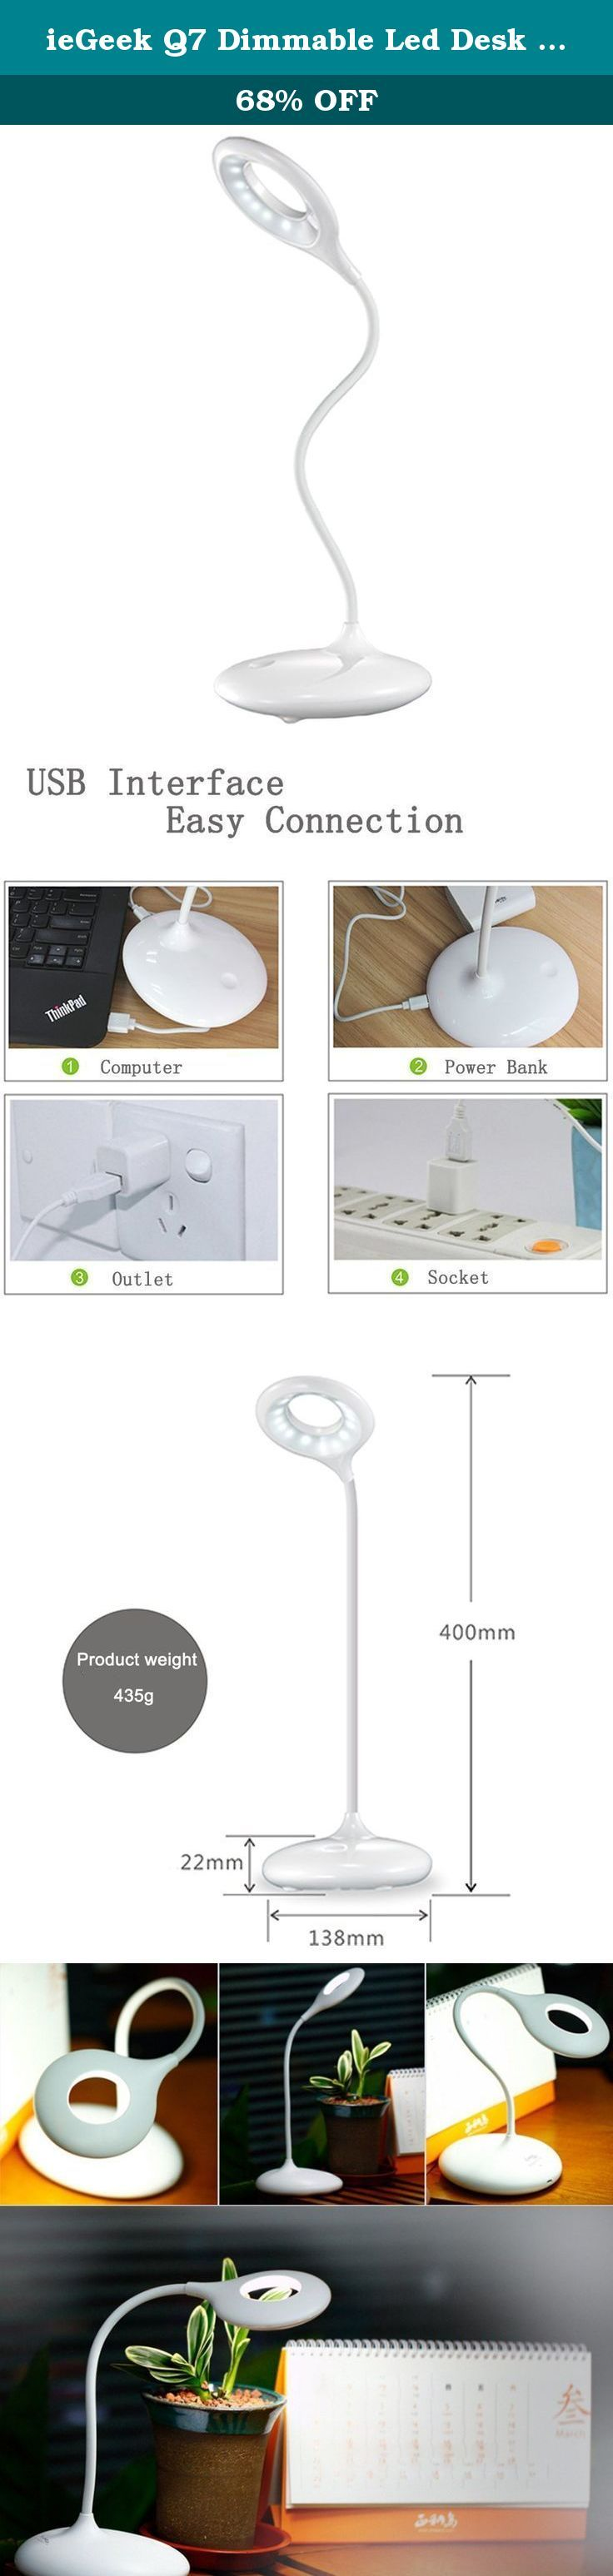 ieGeek Q7 Dimmable Led Desk Lamp - Piano White, Modern Gooseneck Design, Energy Efficient, Stepless Touch-sensitive control, Unlimited Brightness Levels for Working, Reading, Sleeping, Emergency. Parameters: Brand: ieGeek Lamp color: white Light color: warm white Color temperature: 3750-4250K Lumens Max: 210lm Service life: 40000H LED: 18pcs Shell material: ABS+PS Button mode: Stepless Adjustable Brightness by touch Power: 3W Battery capacity: 1200mAh Color rendering index: >80 Input…